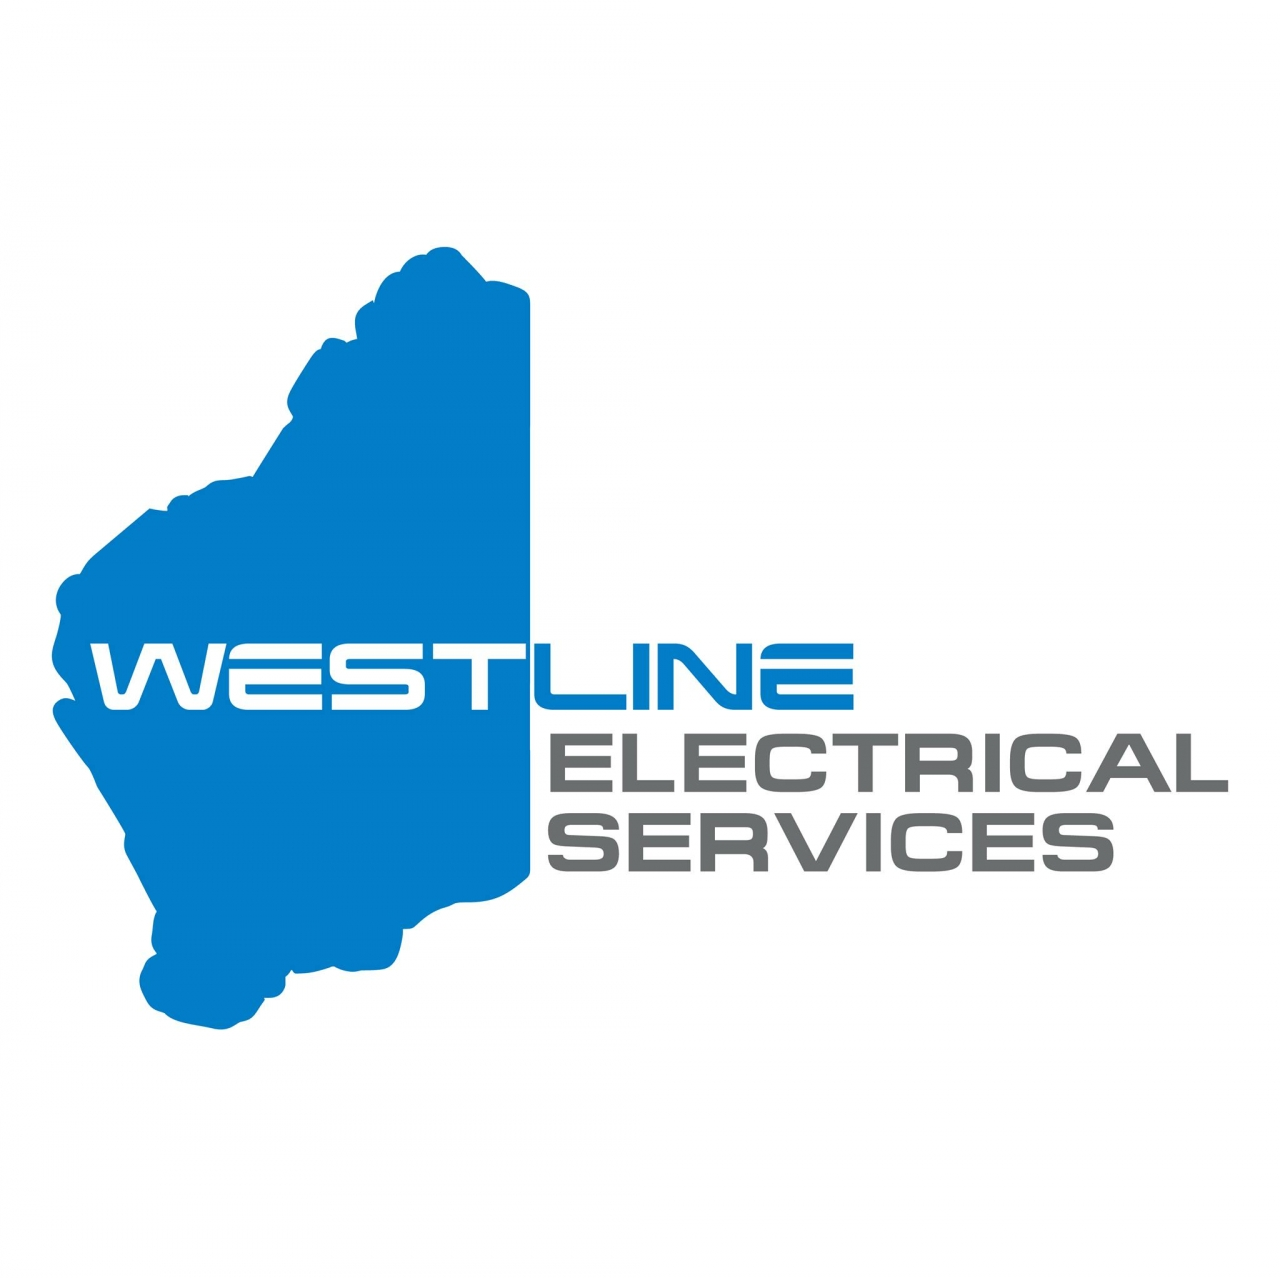 westline-electrical-services